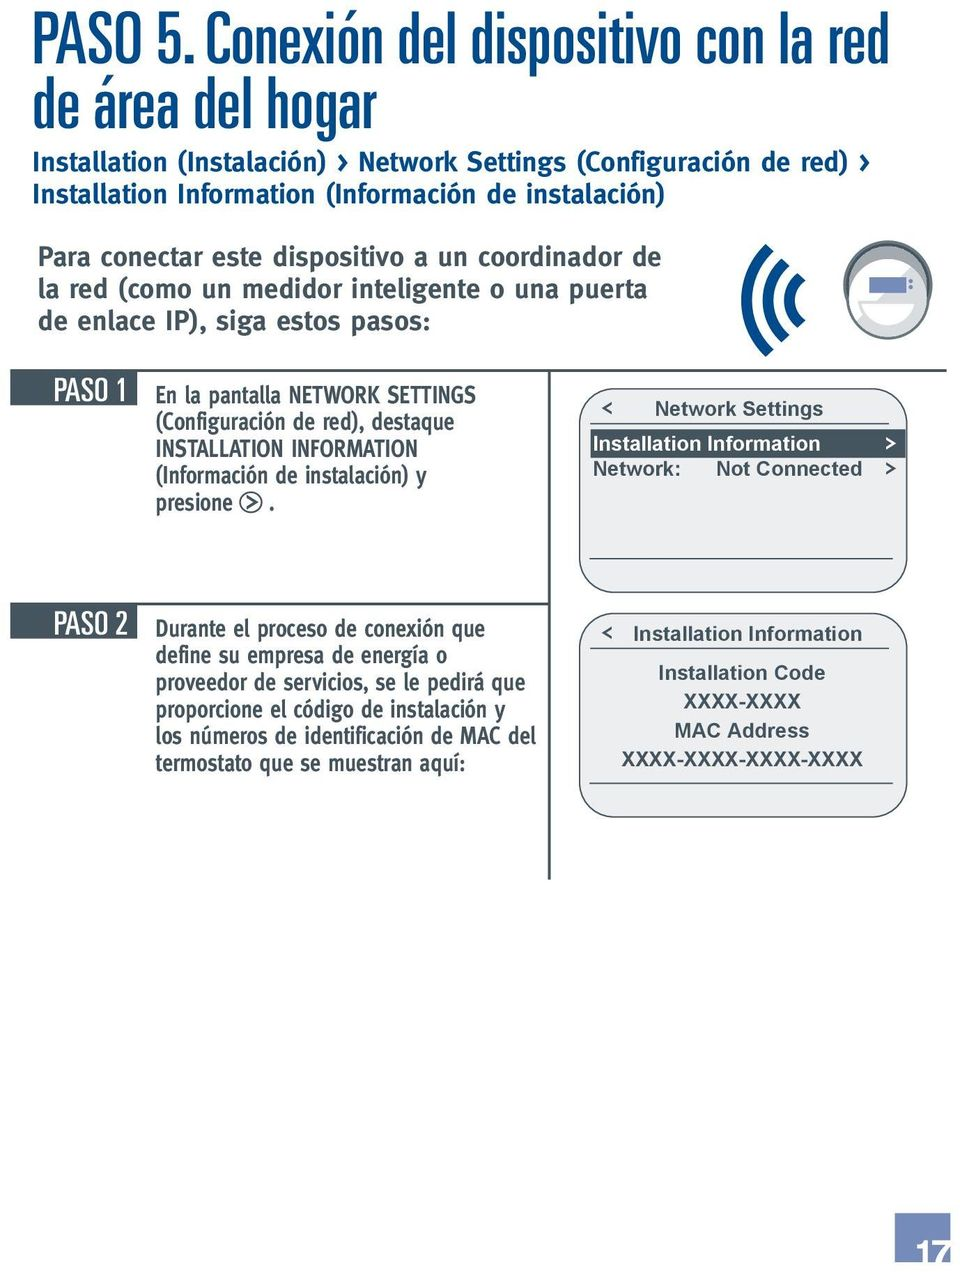 dispositivo a un coordinador de la red (como un medidor inteligente o una puerta de enlace IP), siga estos pasos: PASO 1 En la pantalla NETWORK SETTINGS (Configuración de red), destaque INSTALLATION